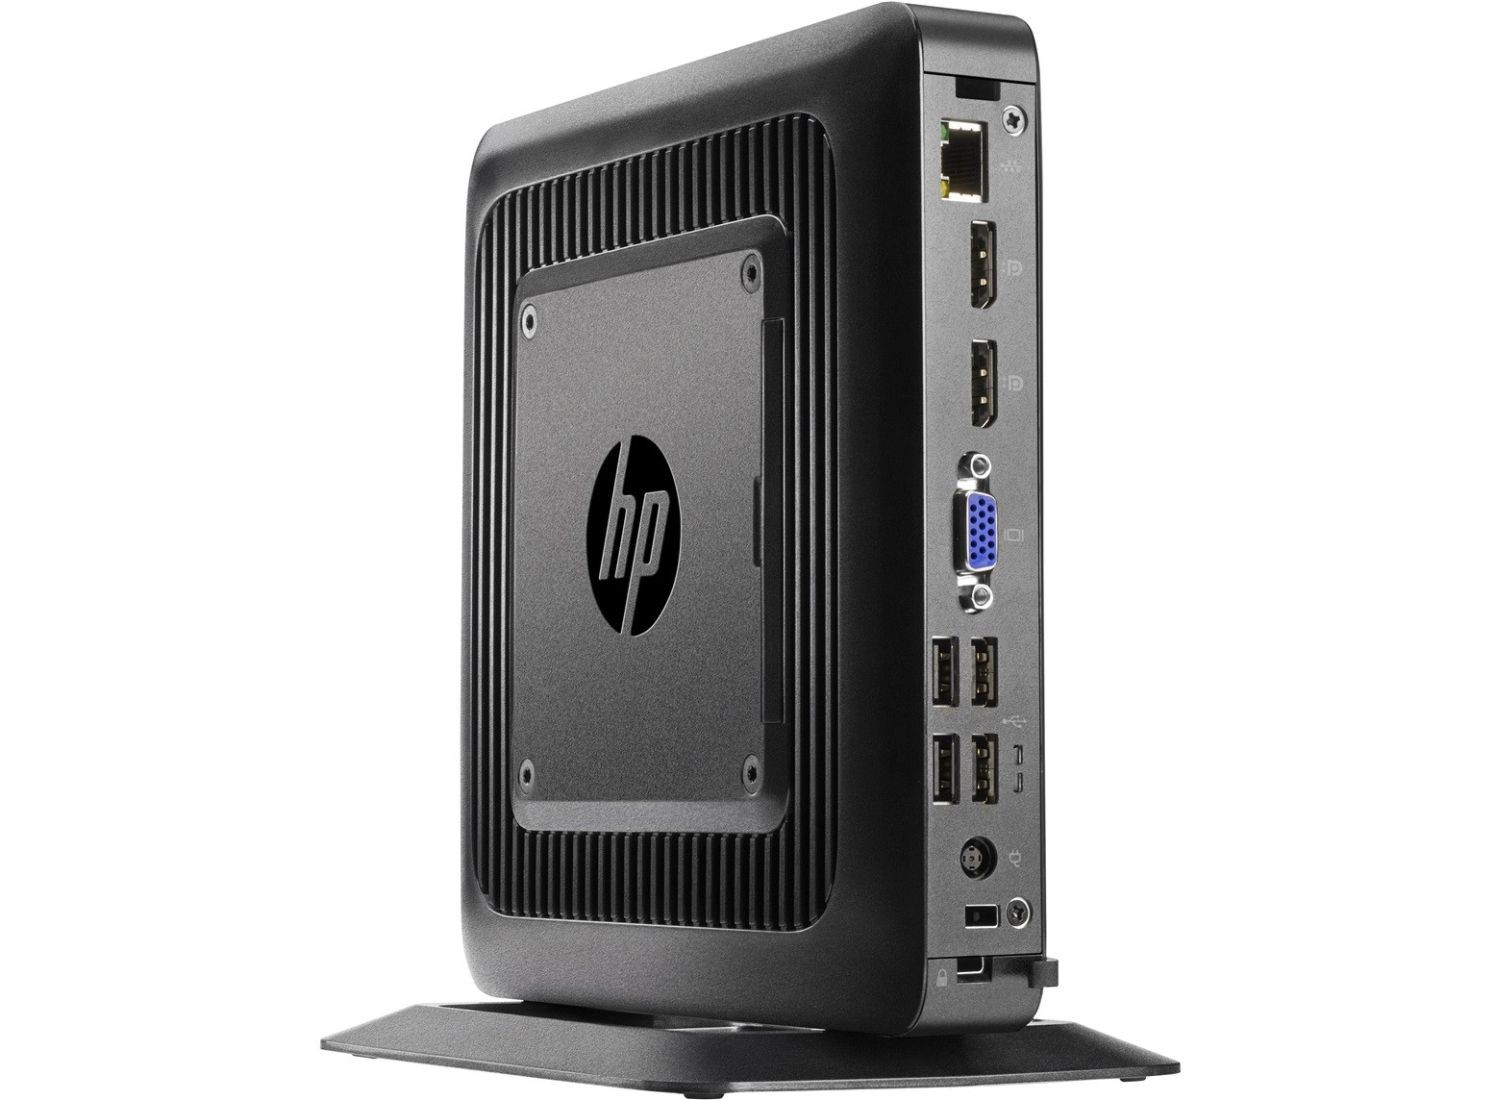 HP Terminal t520/Win7E 32bit 4GB